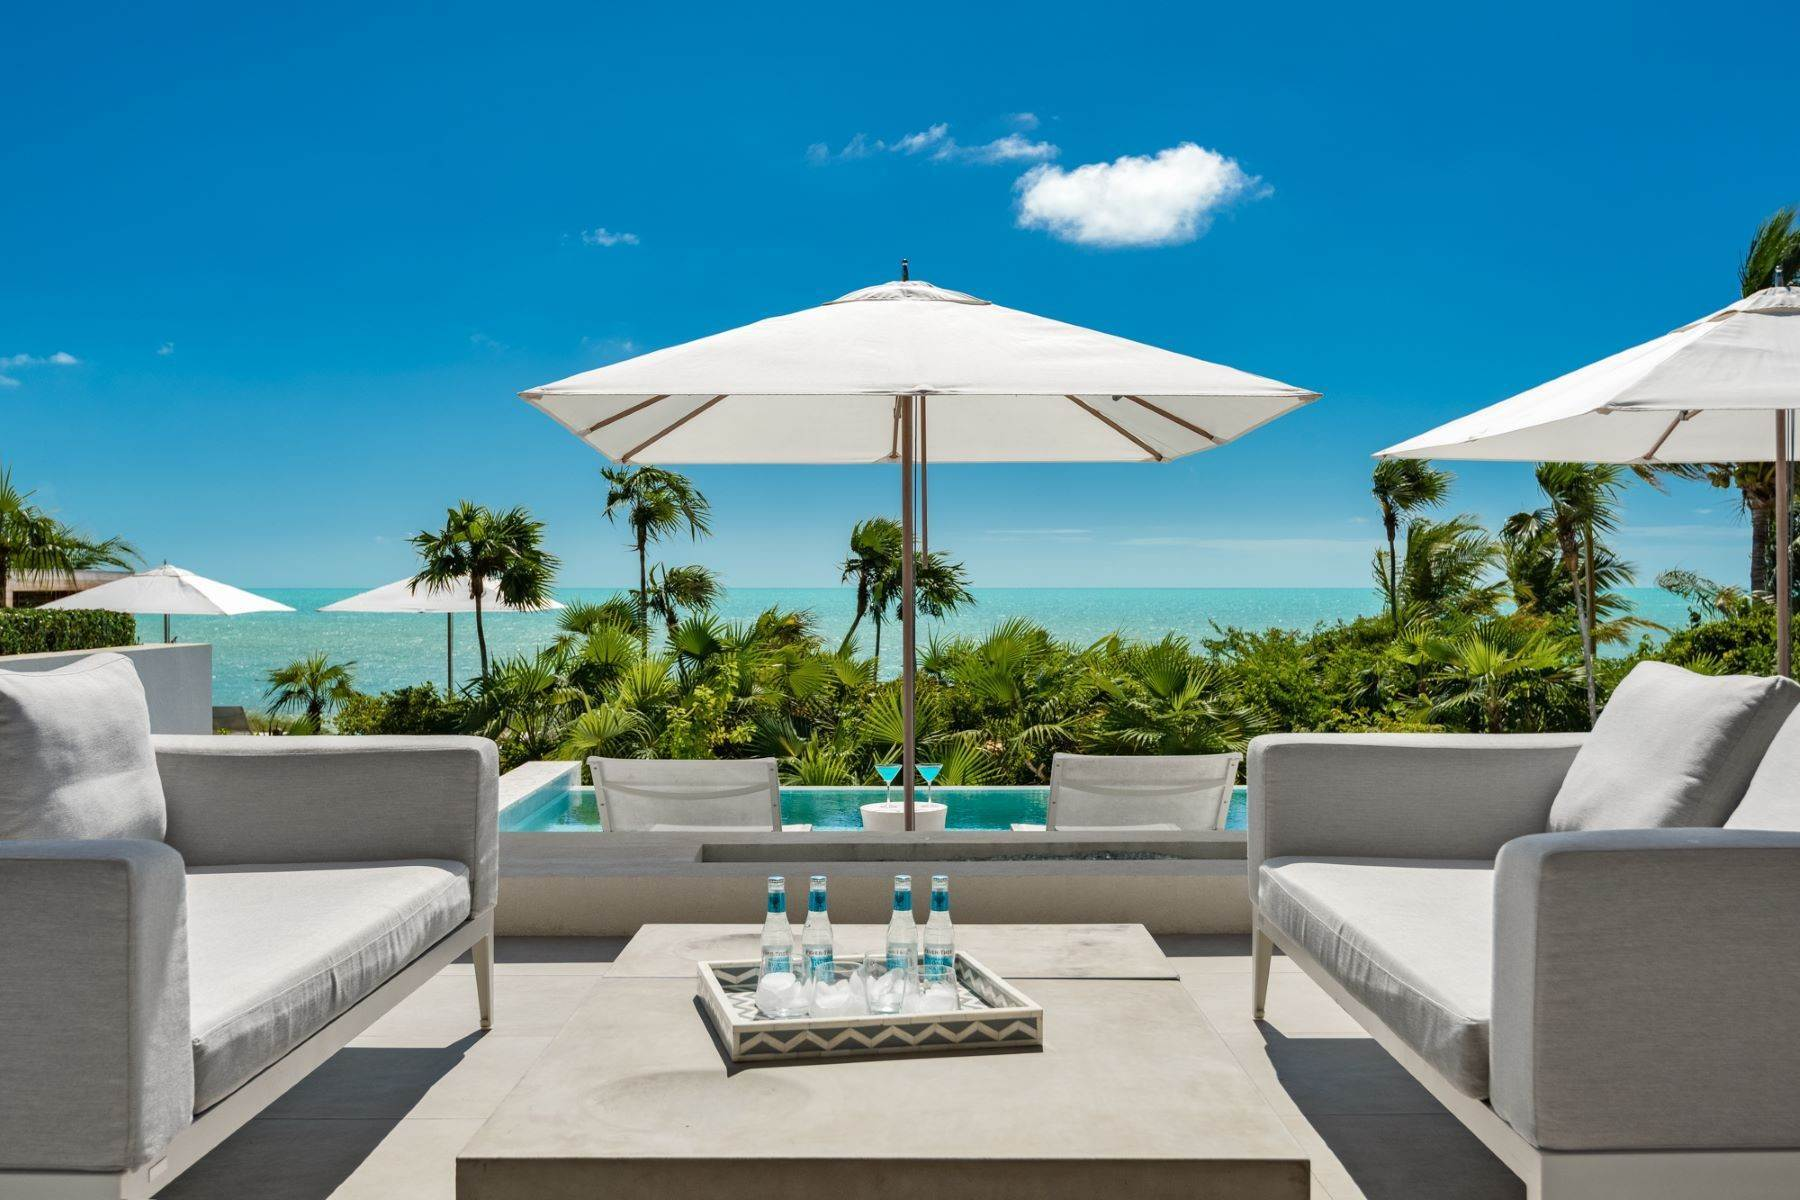 Single Family Homes for Sale at Beach Enclave Long Bay - Villa 6 Beach Enclave Long Bay, Long Bay, Providenciales Turks And Caicos Islands